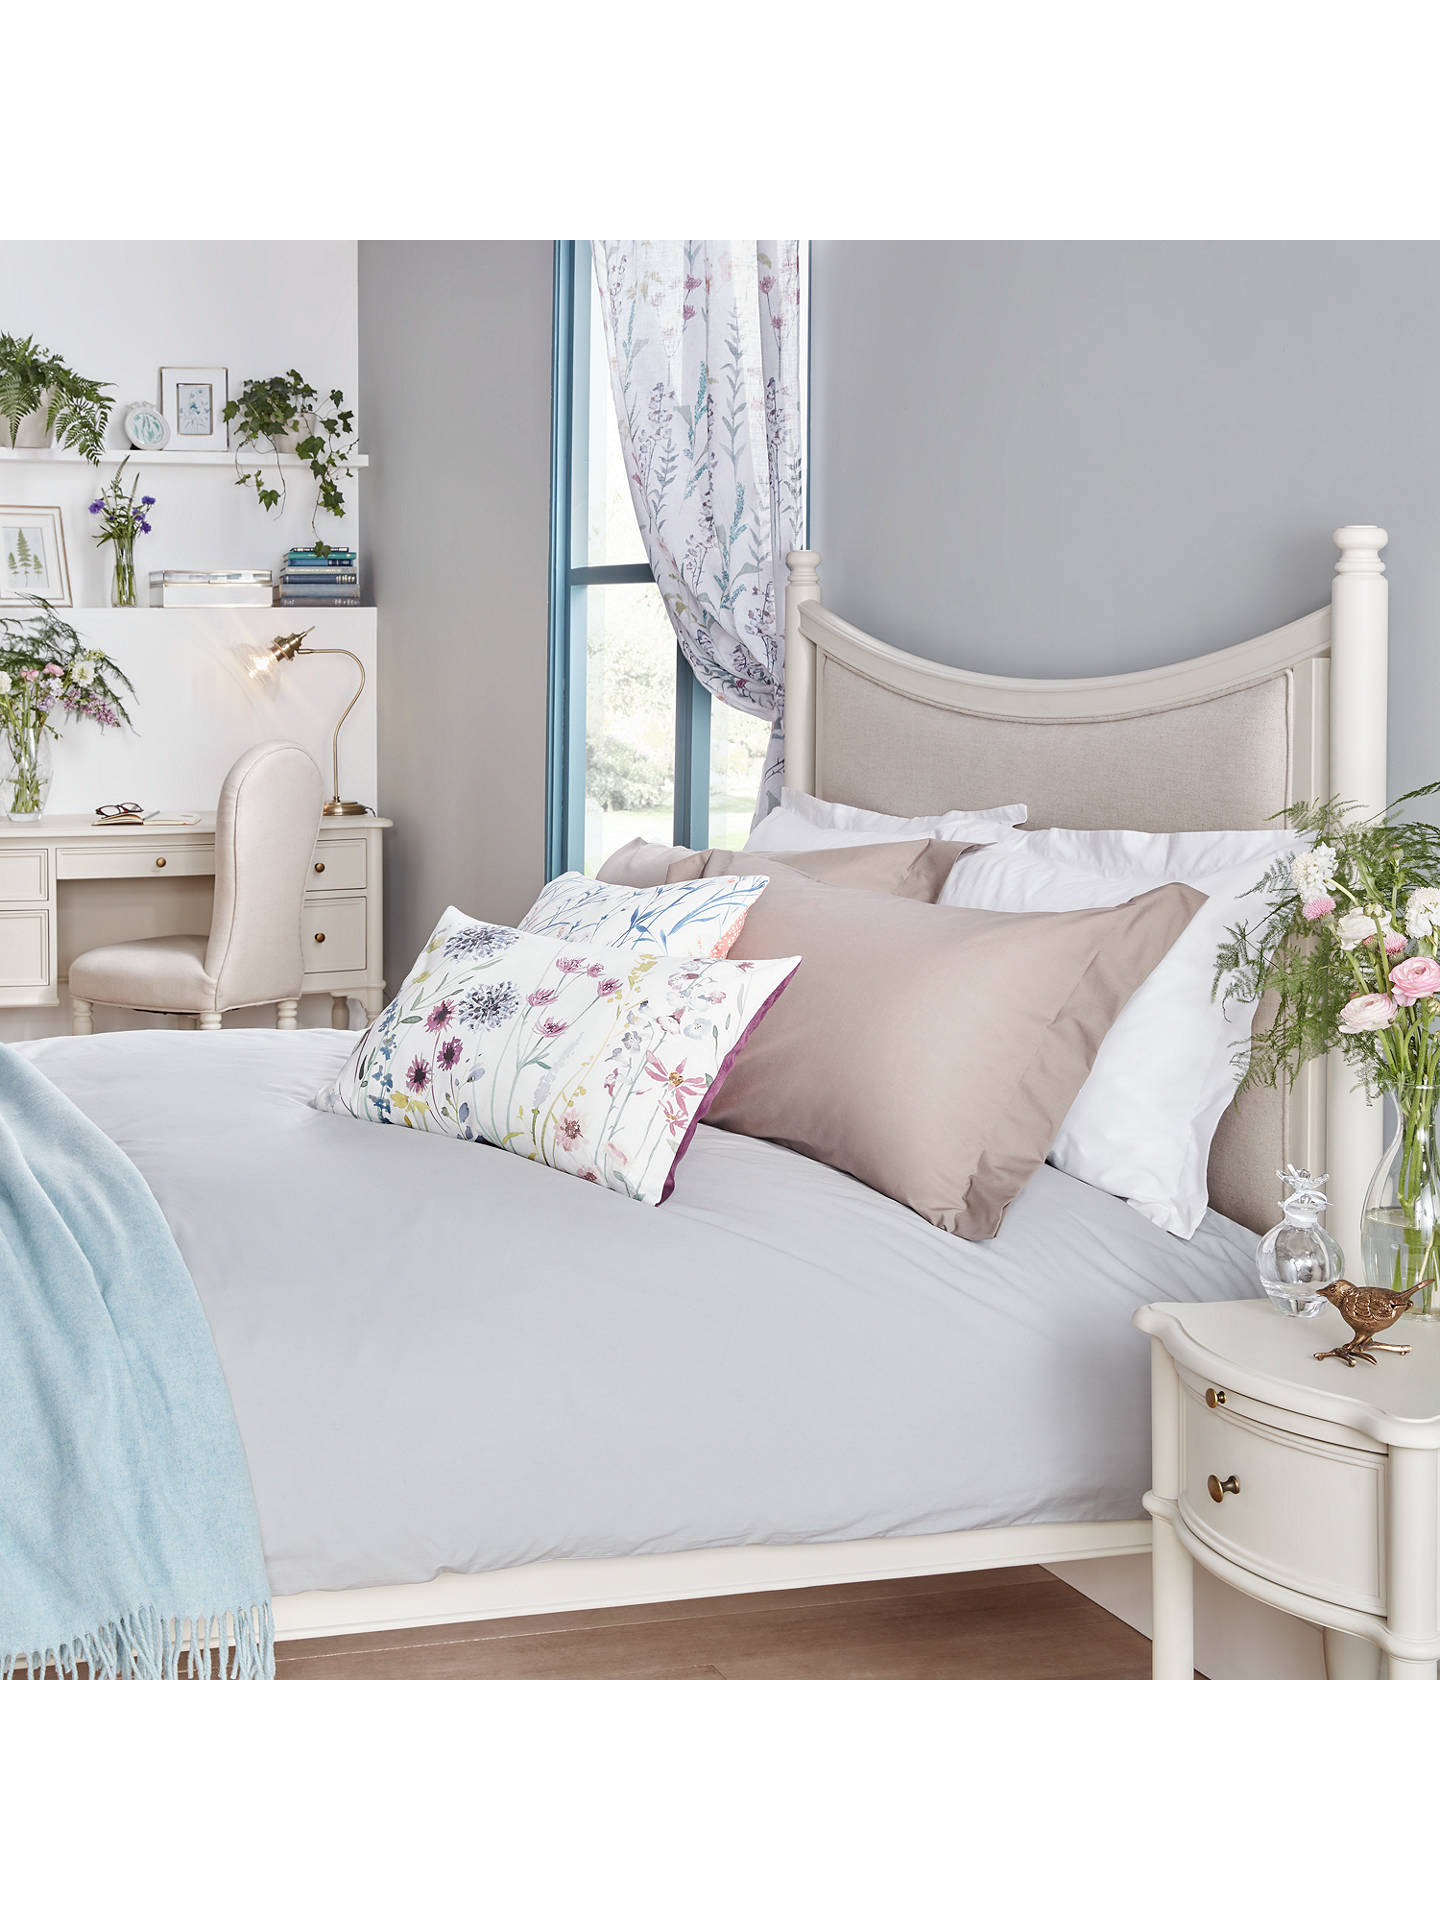 Buy John Lewis & Partners Ivybridge Low End Bed Frame, King Size Online at johnlewis.com